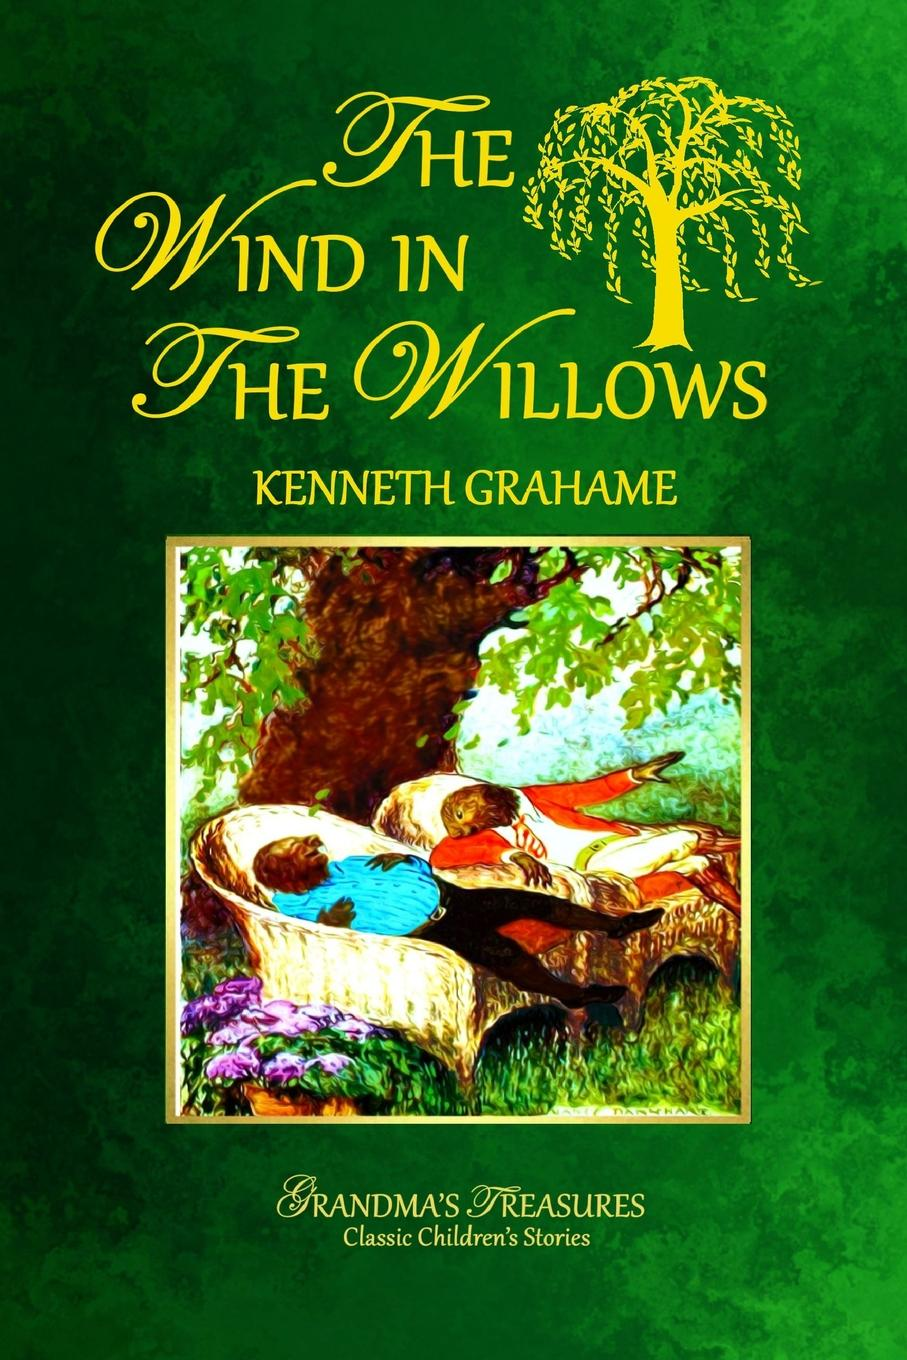 KENNETH GRAHAME, GRANDMA'S TREASURES THE WIND IN THE WILLOWS цена